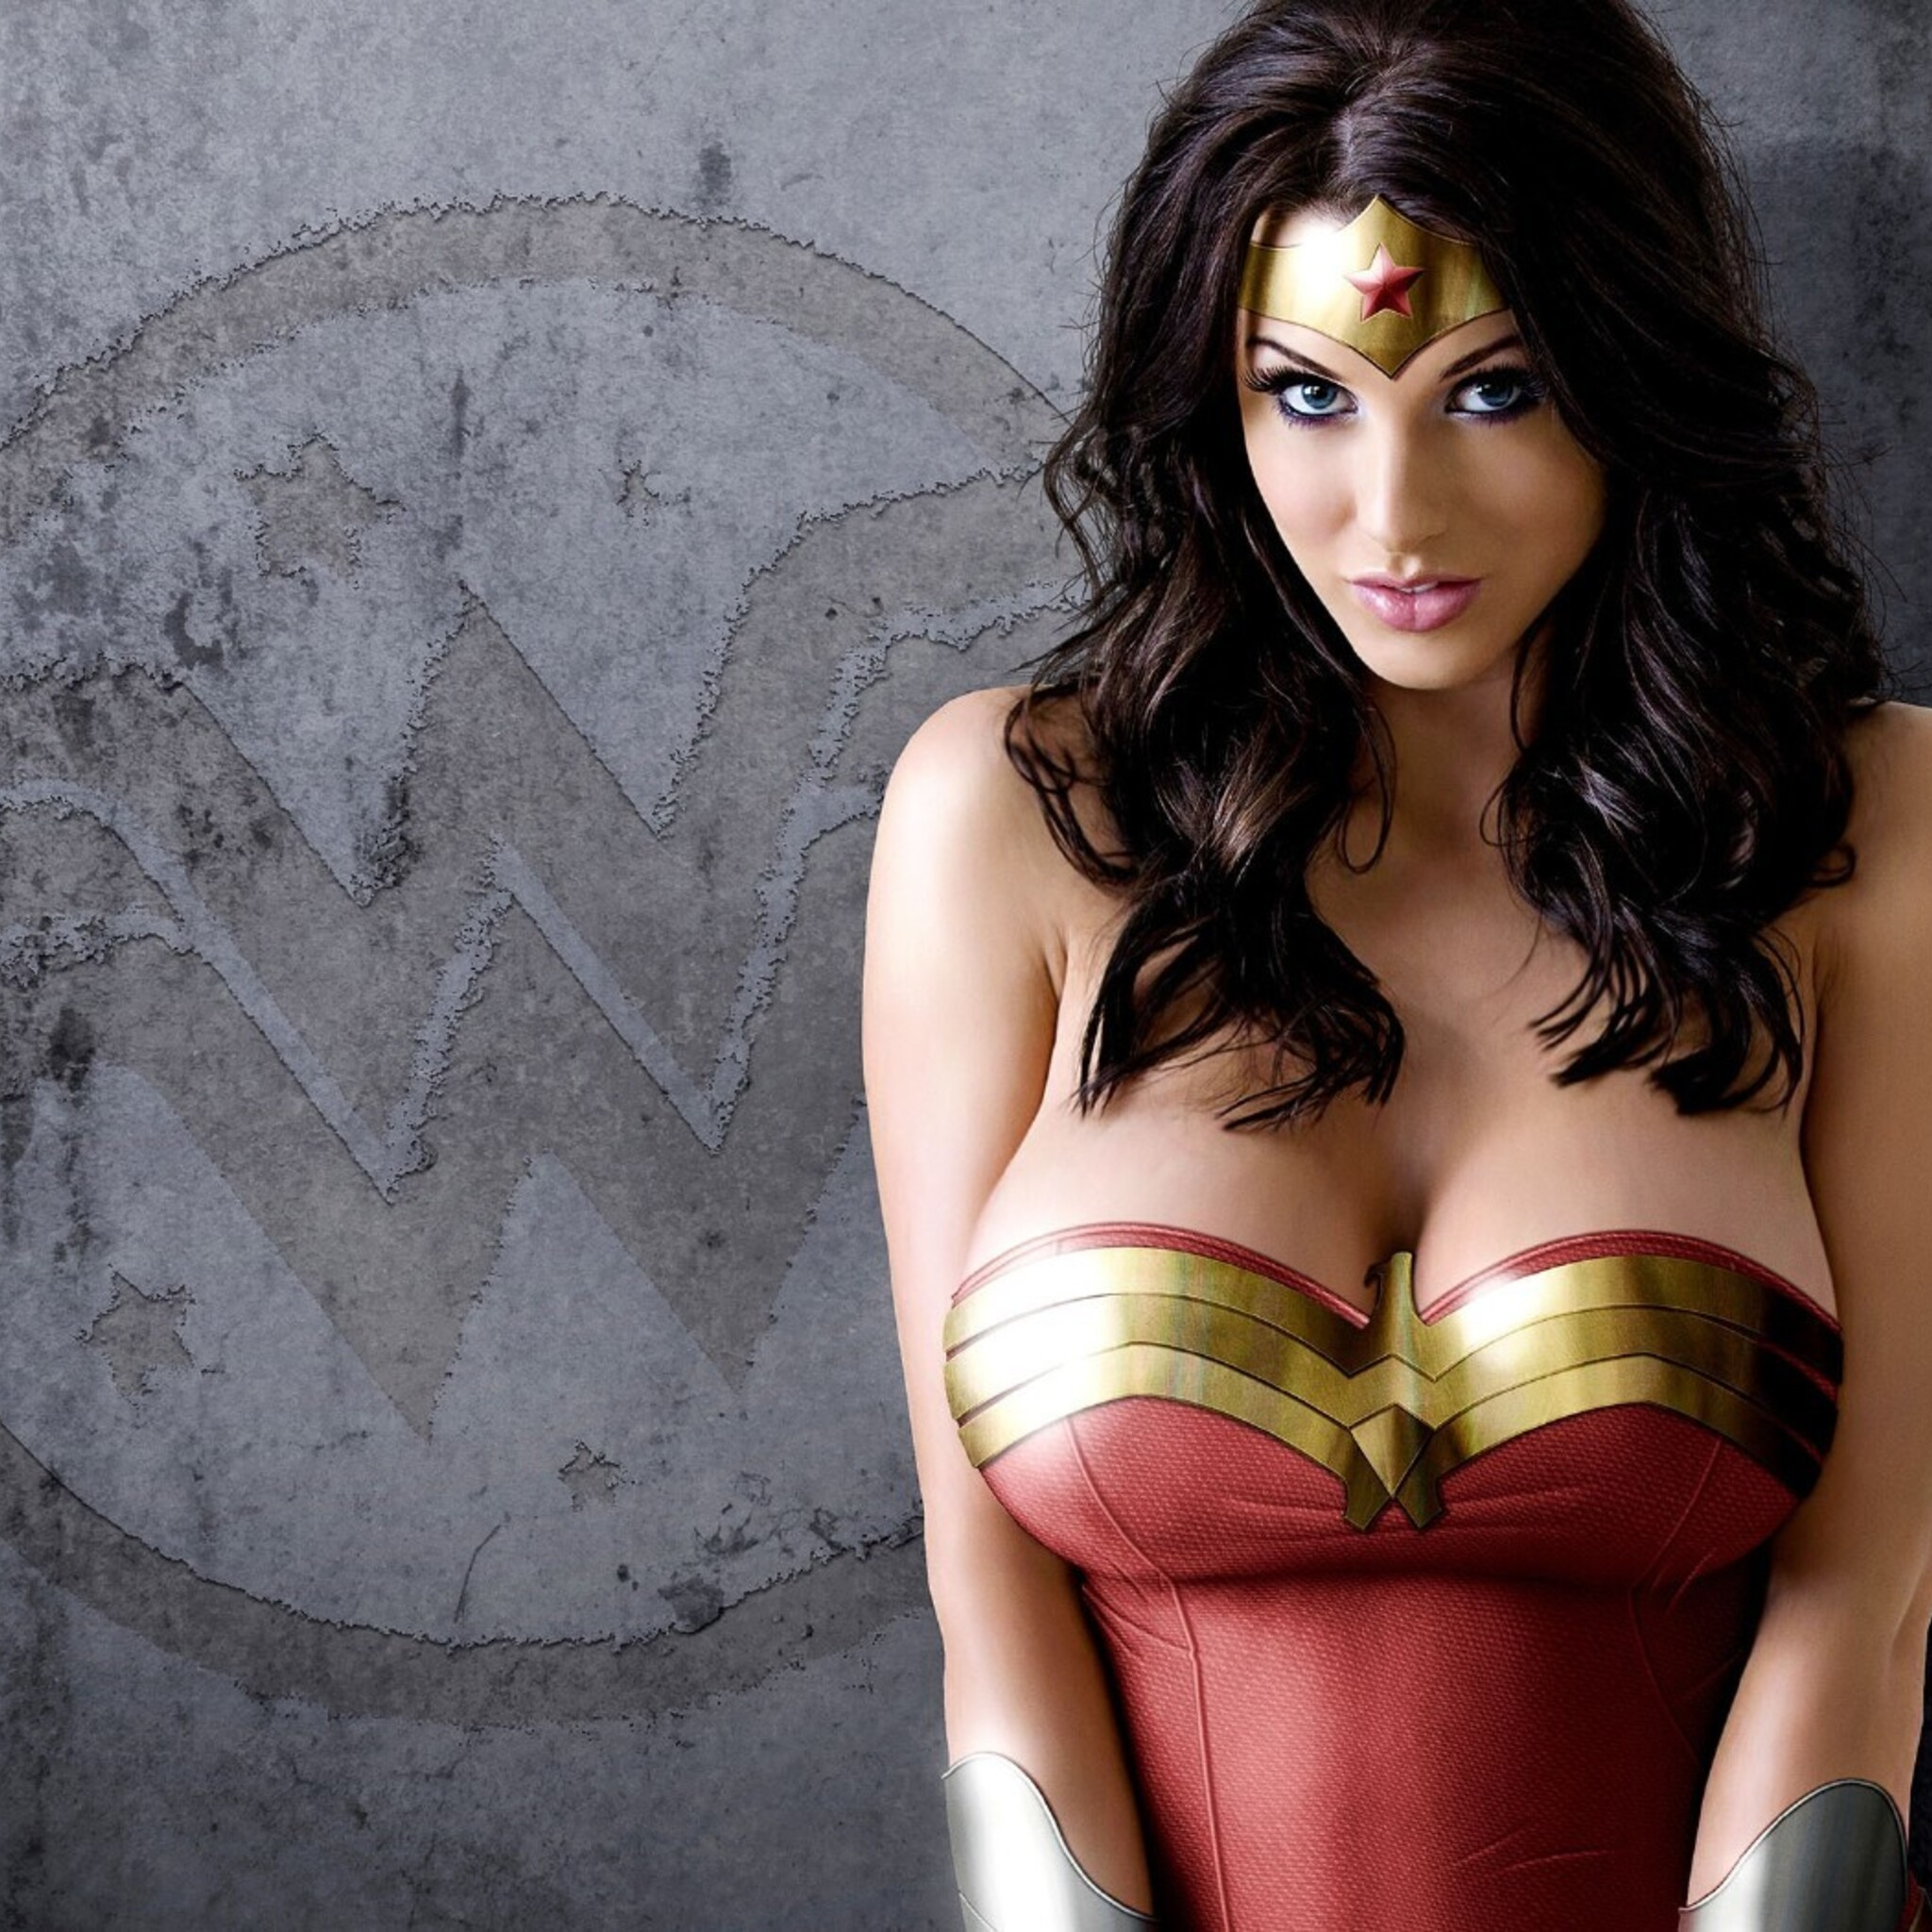 wonder-woman-fictional-character.jpg